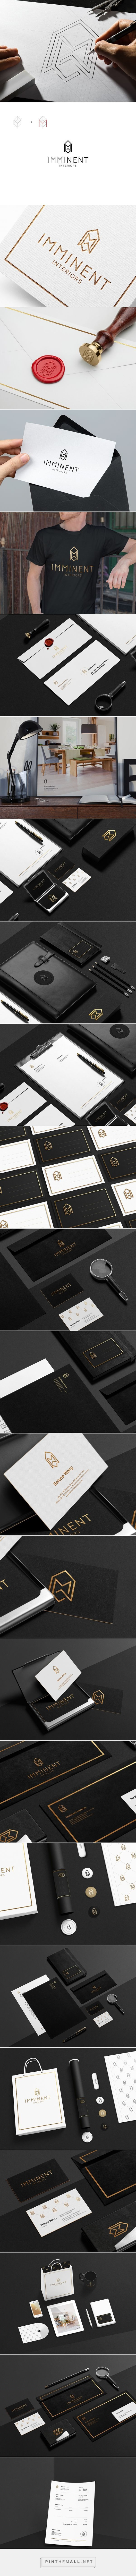 Imminent Interiors - Architect - Branding by Tomasz Mazurczak